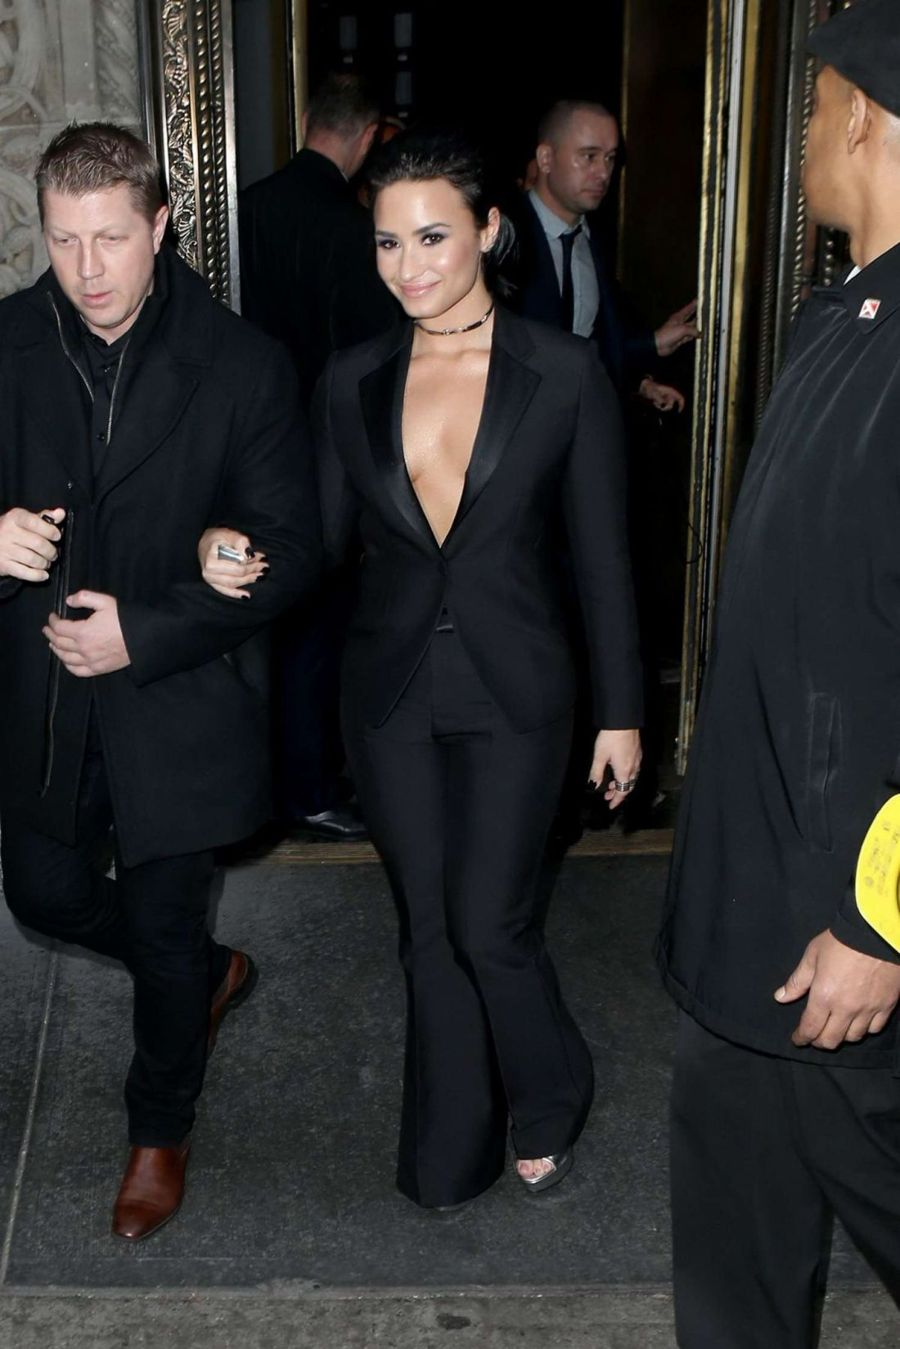 Demi Lovato - Leaving her hotel in Black Tuxedi